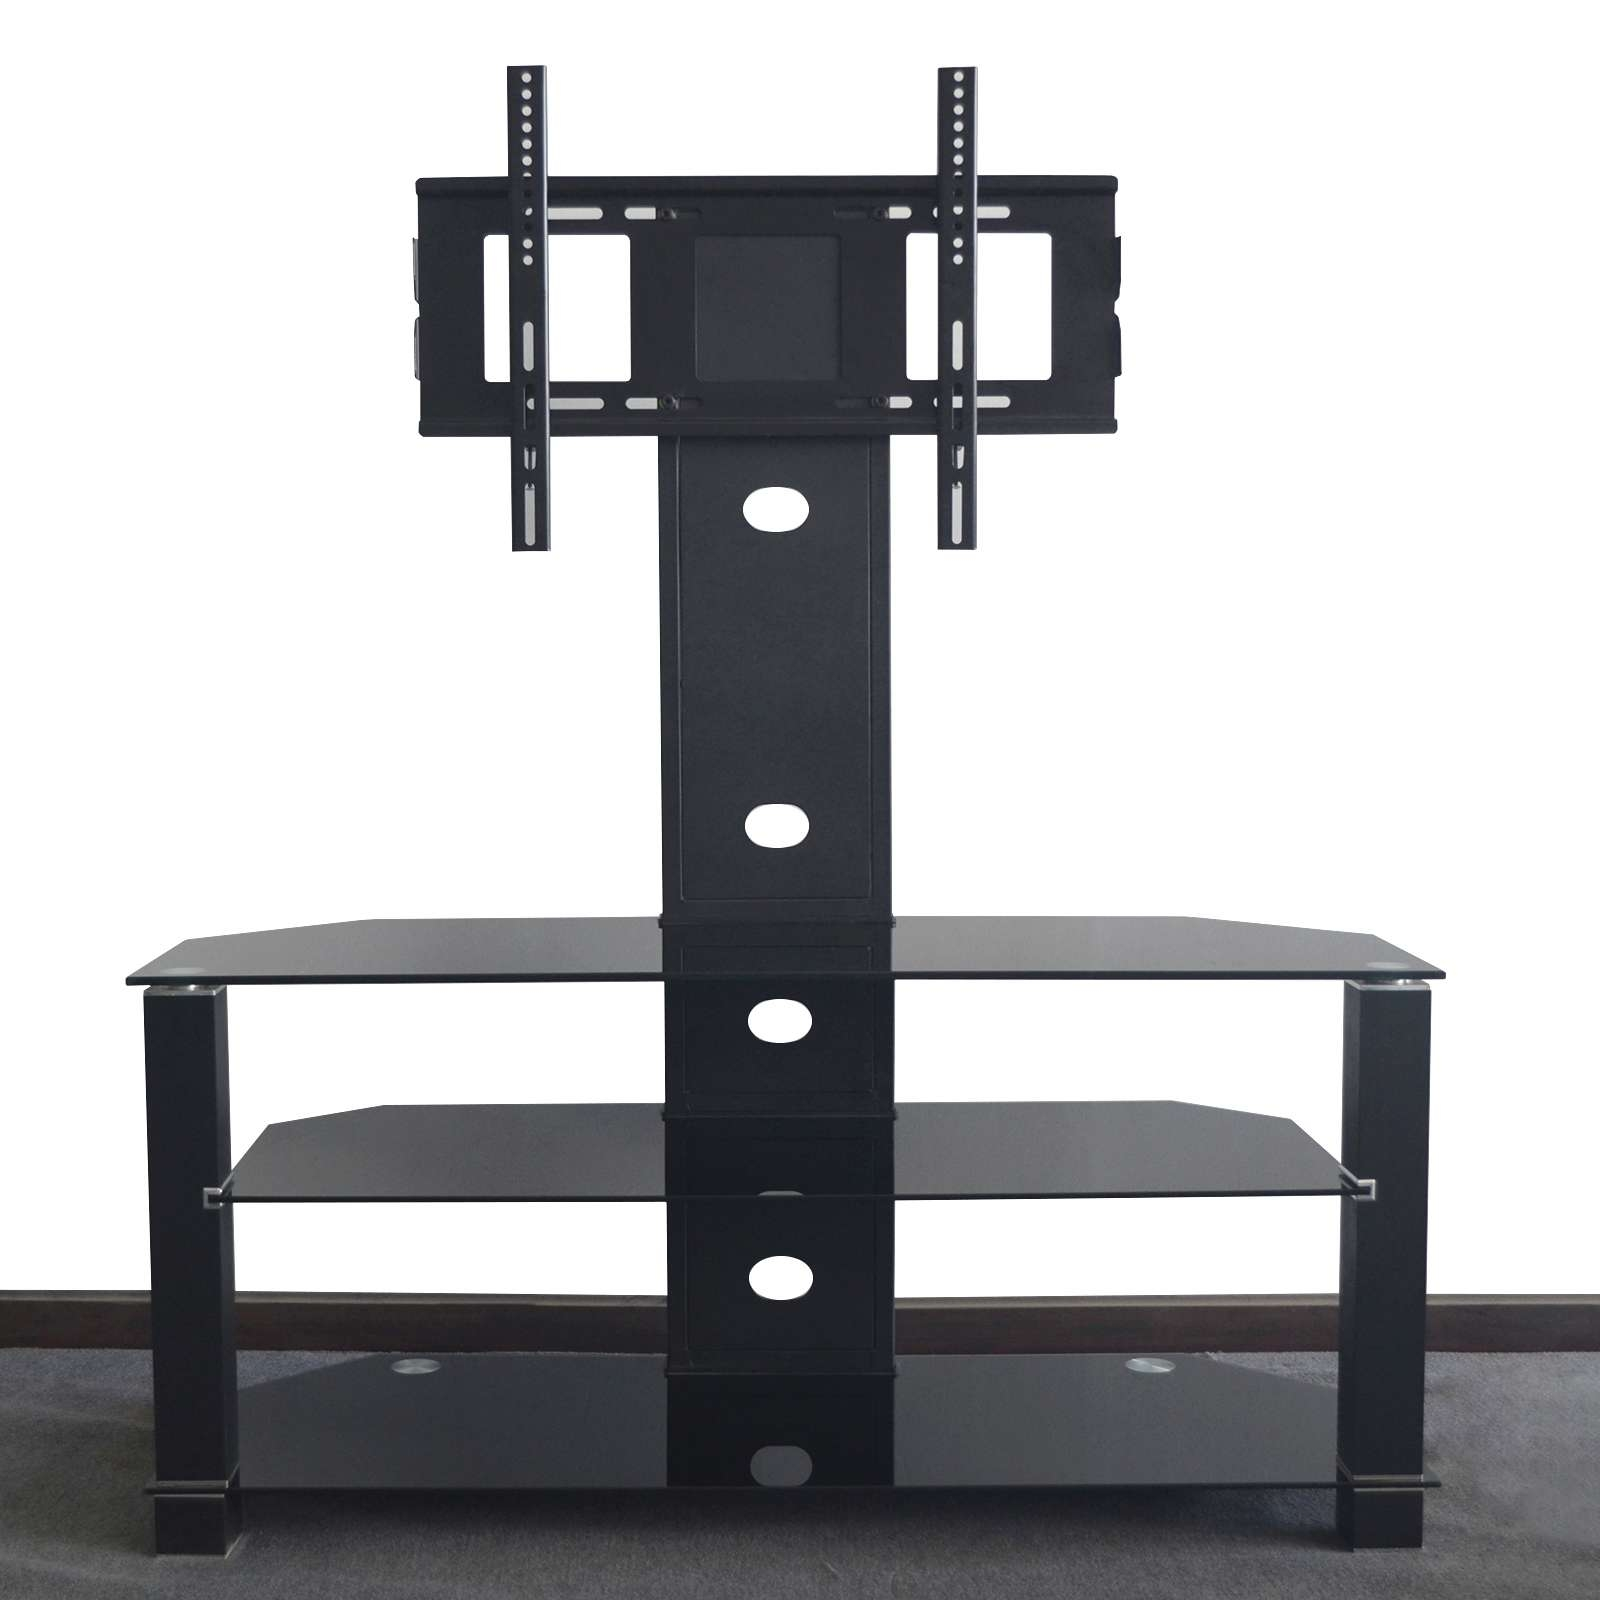 Cantilever Glass Tv Stand With Swivel Bracket For 32 To 55 Inches Pertaining To Cantilever Glass Tv Stands (View 9 of 20)